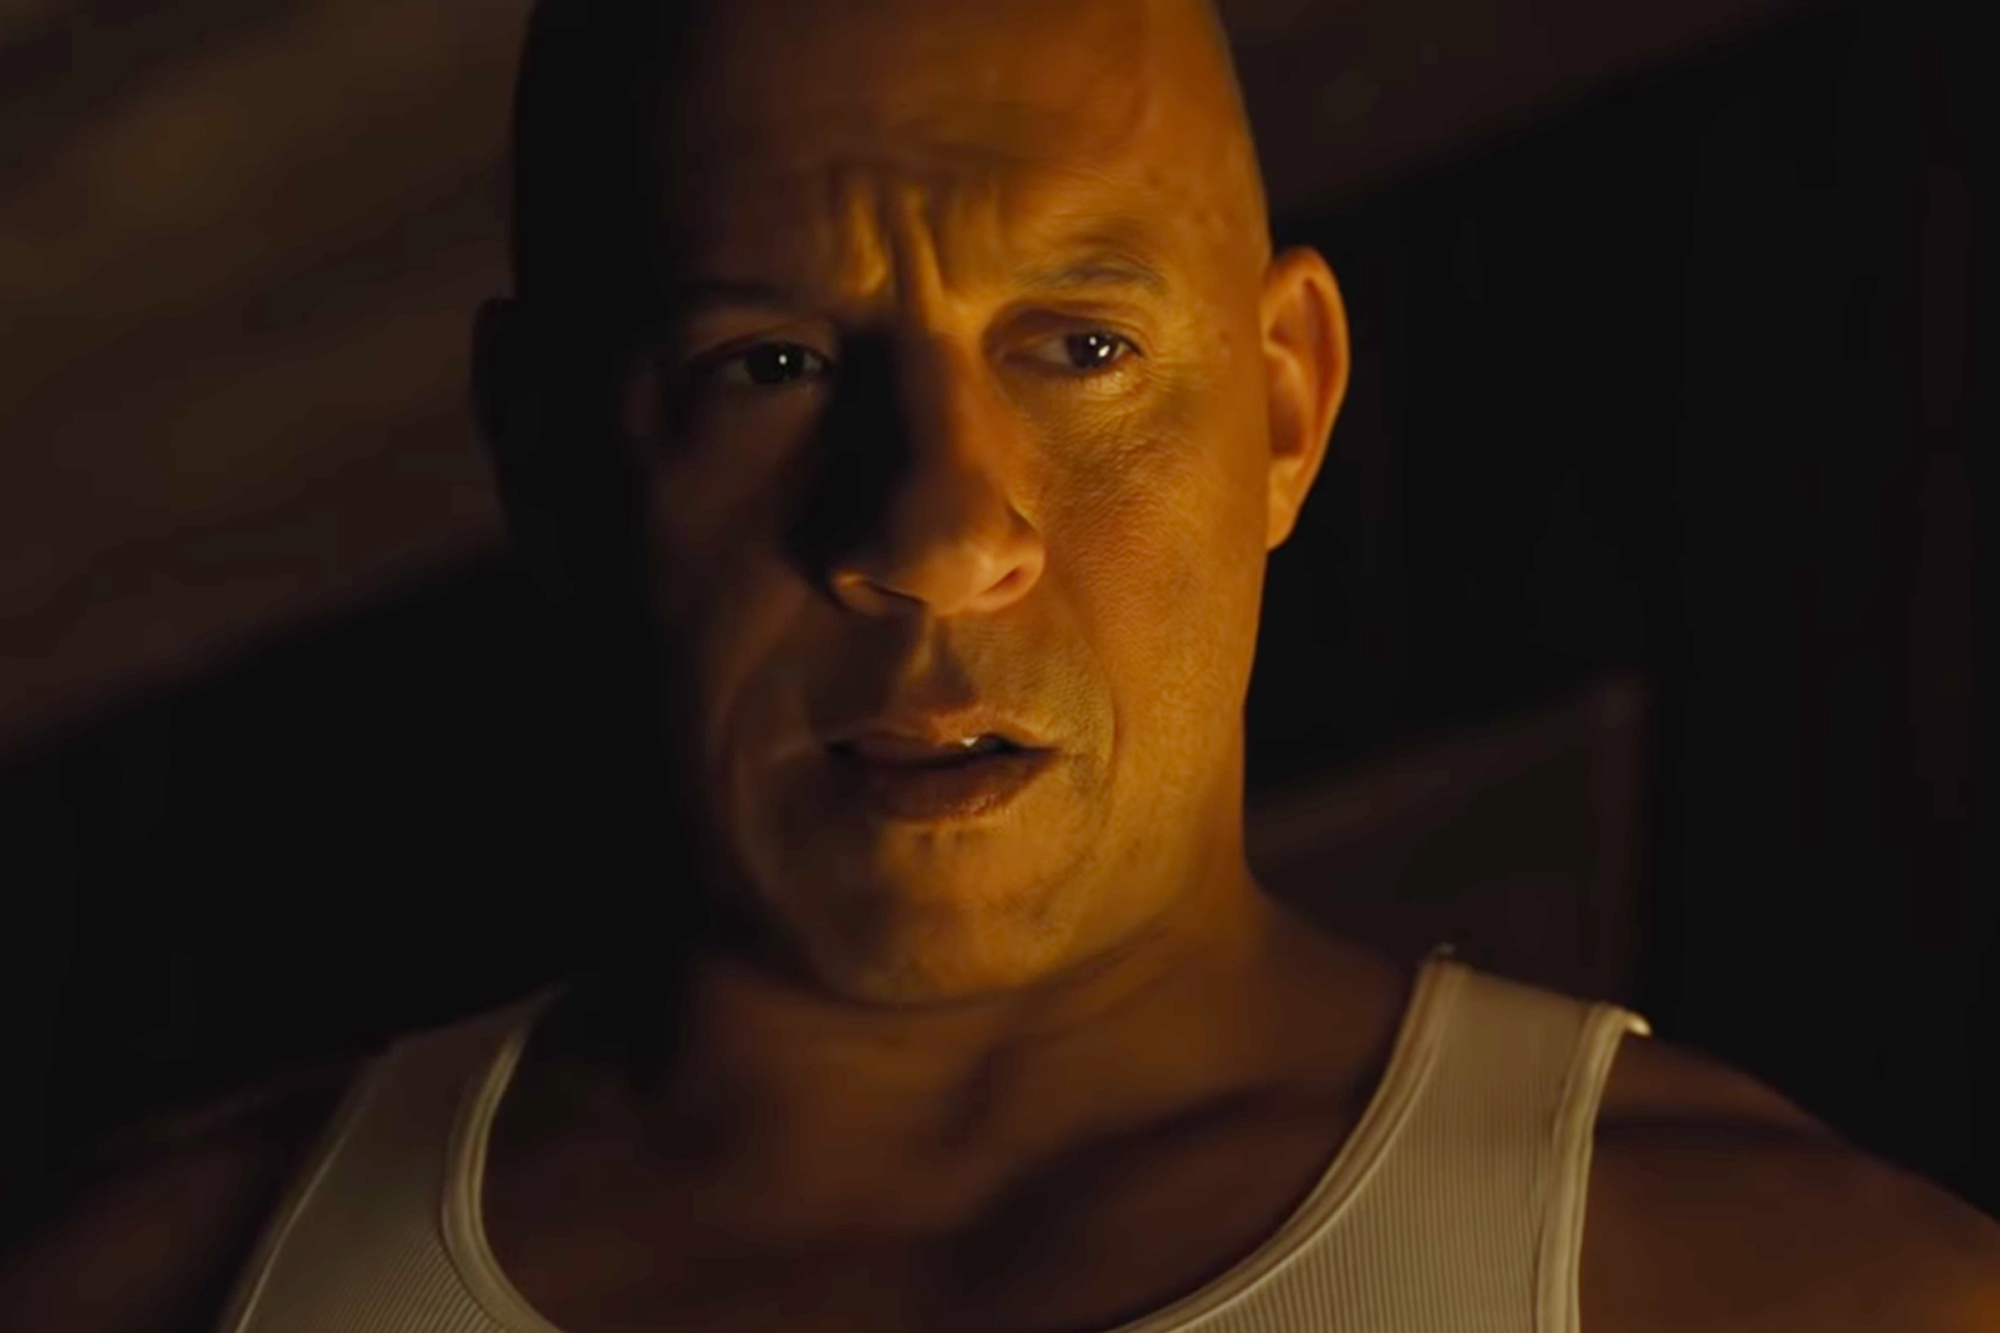 'F9' Trailer: Vin Diesel Goes to War With Brother John Cena in New 'Fast & Furious' Film